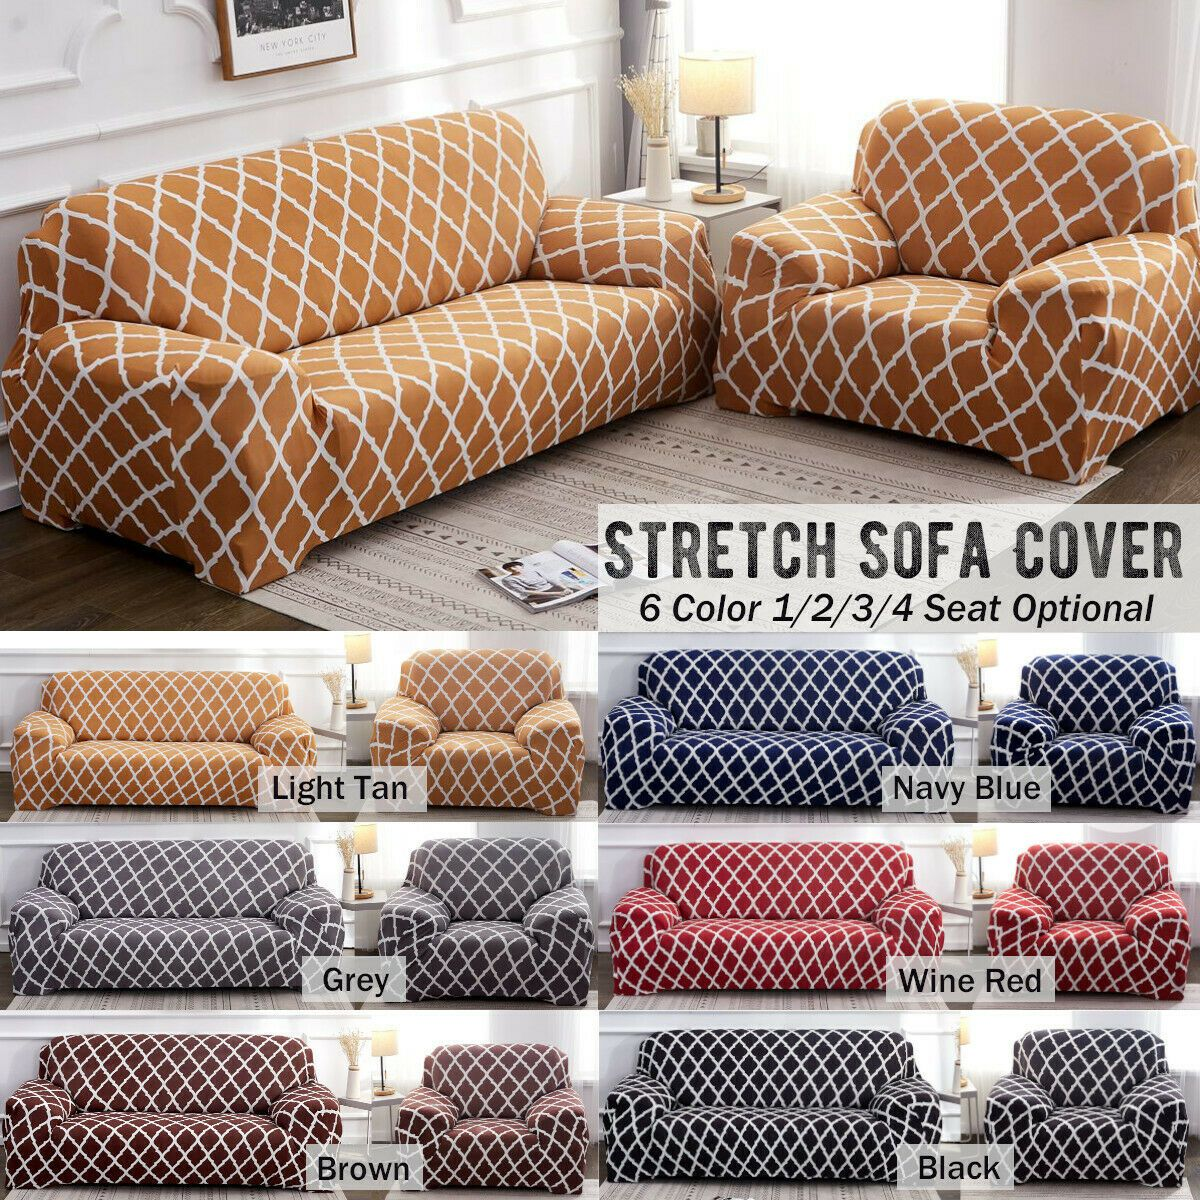 Sofa Cover Chair Covers Couch Slipcover Stretch Fabric Protector Seater Pad Mat Sofa Slipcover Ektorp Sofa Cover Couch Covers Slipcovers Slip Covers Couch